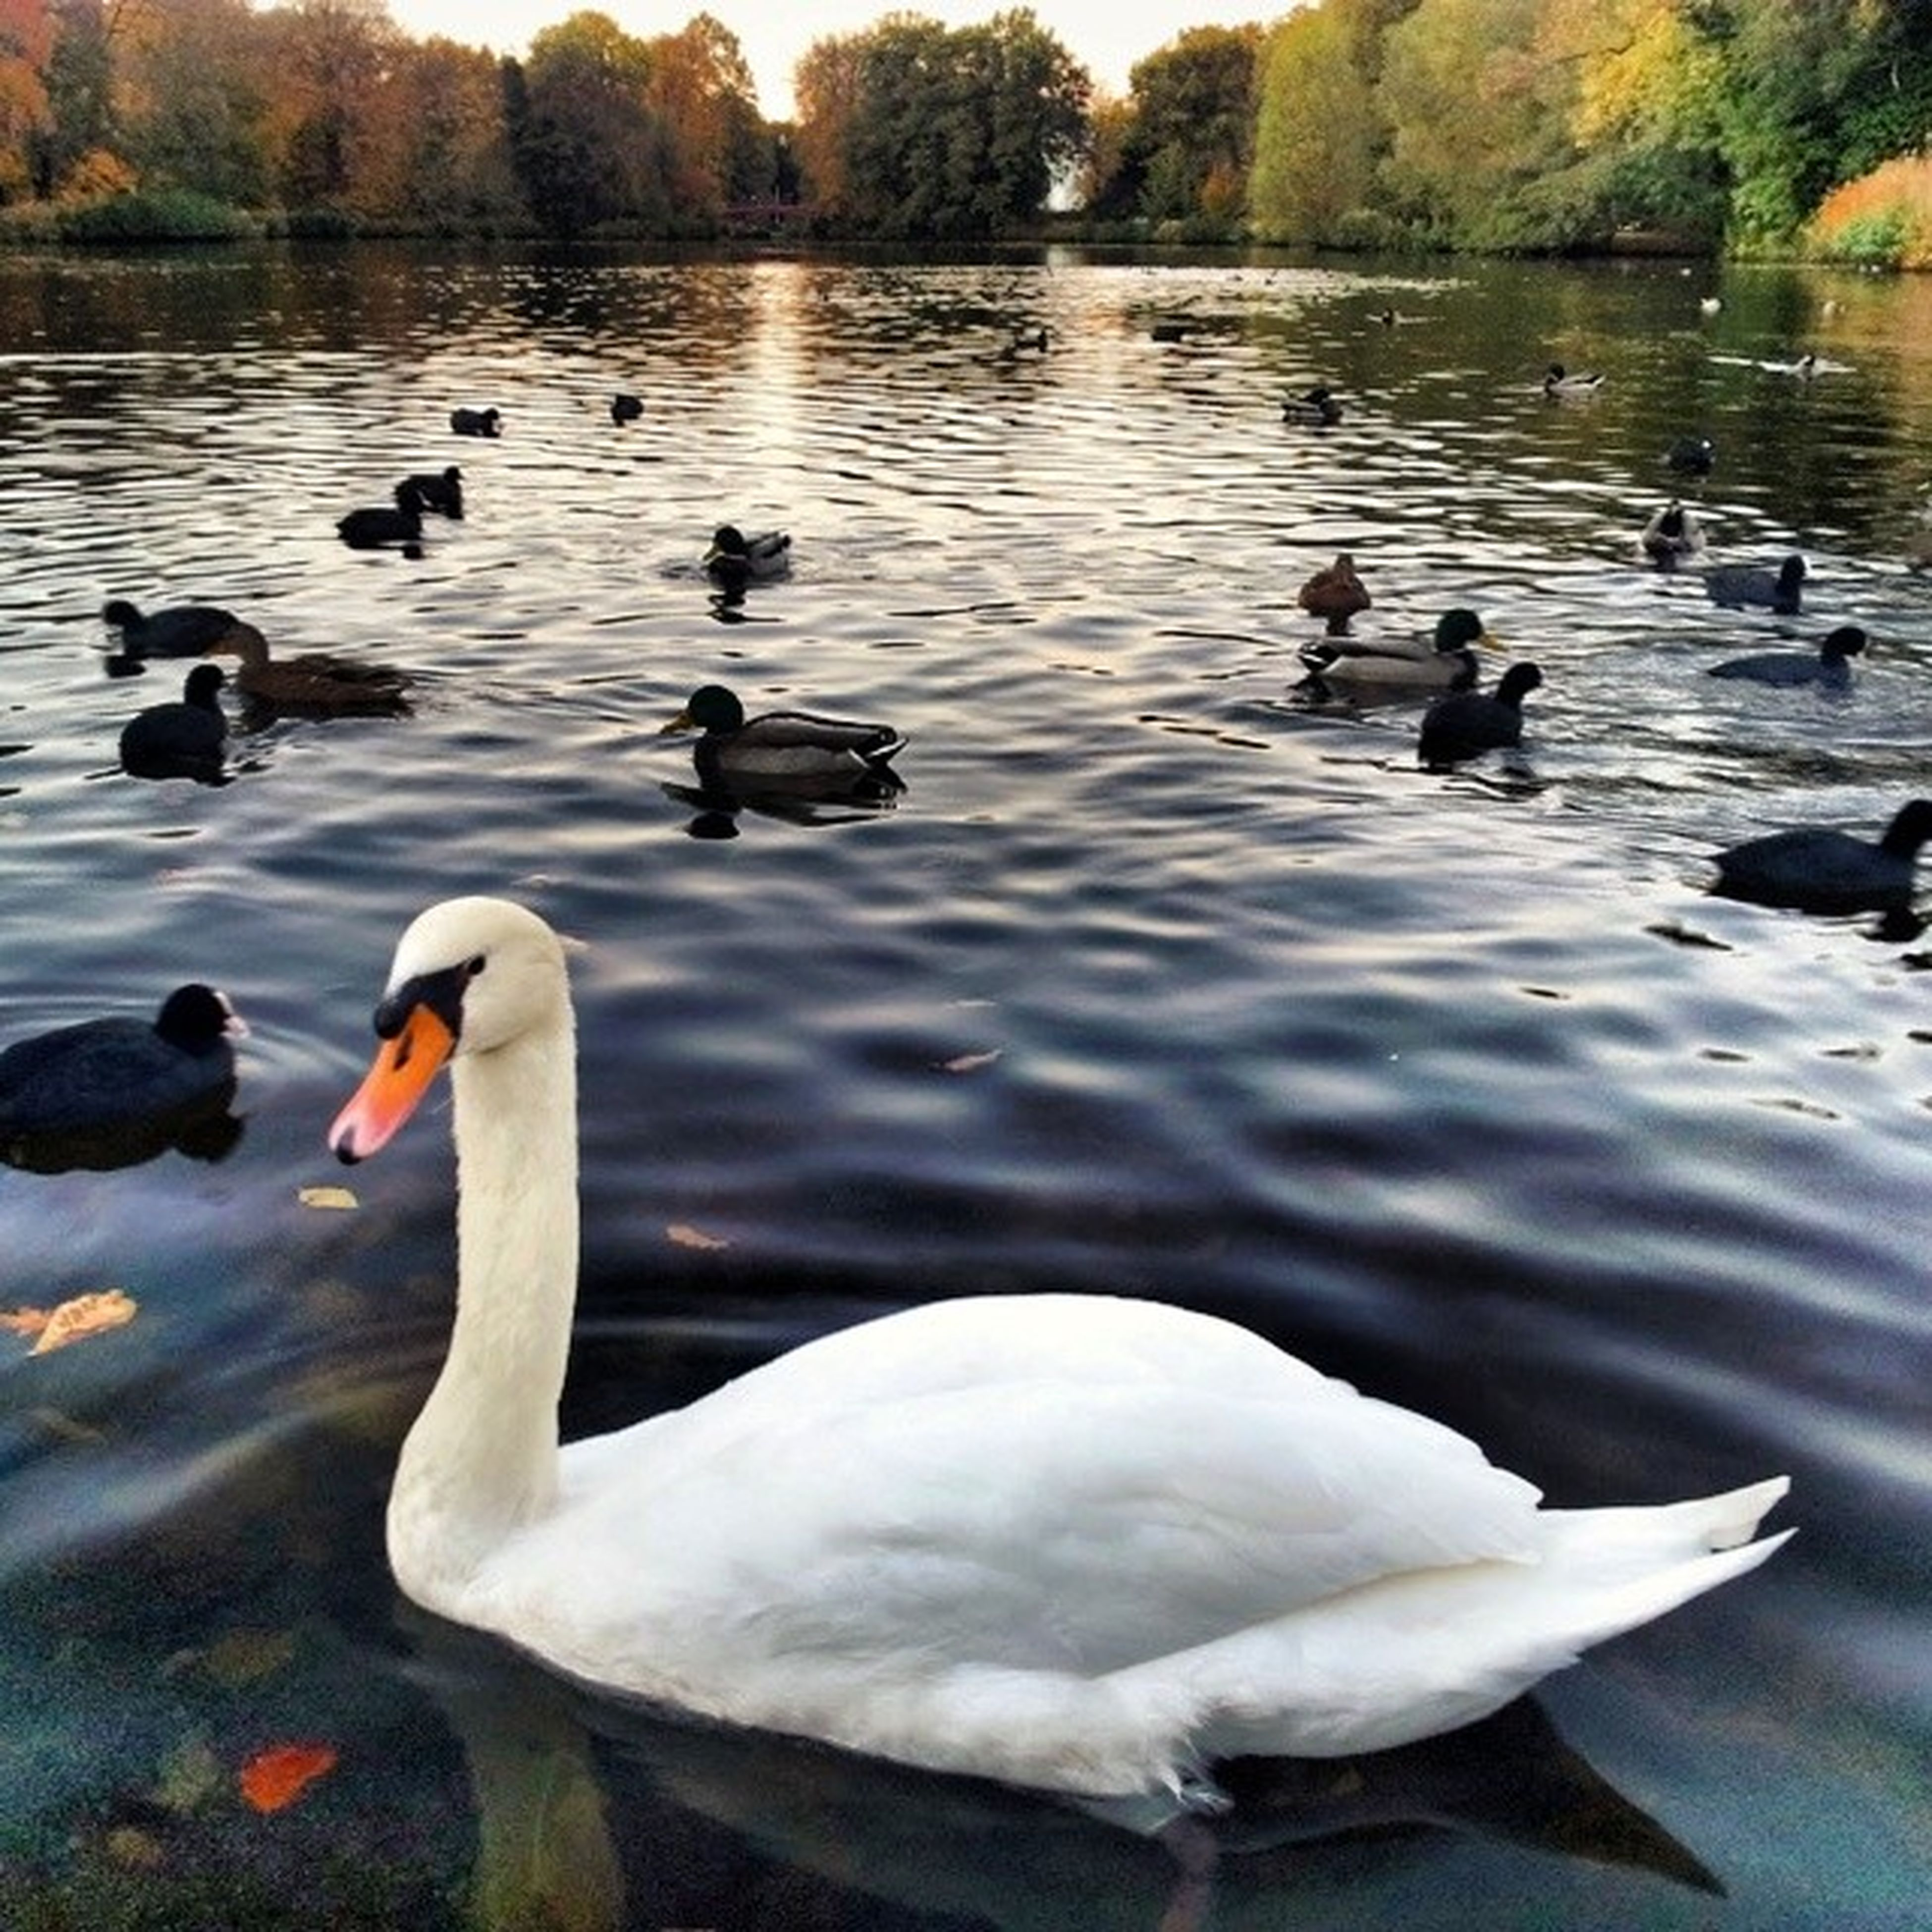 bird, animal themes, animals in the wild, water, wildlife, lake, swan, swimming, duck, flock of birds, reflection, nature, goose, water bird, togetherness, beauty in nature, lakeshore, medium group of animals, rippled